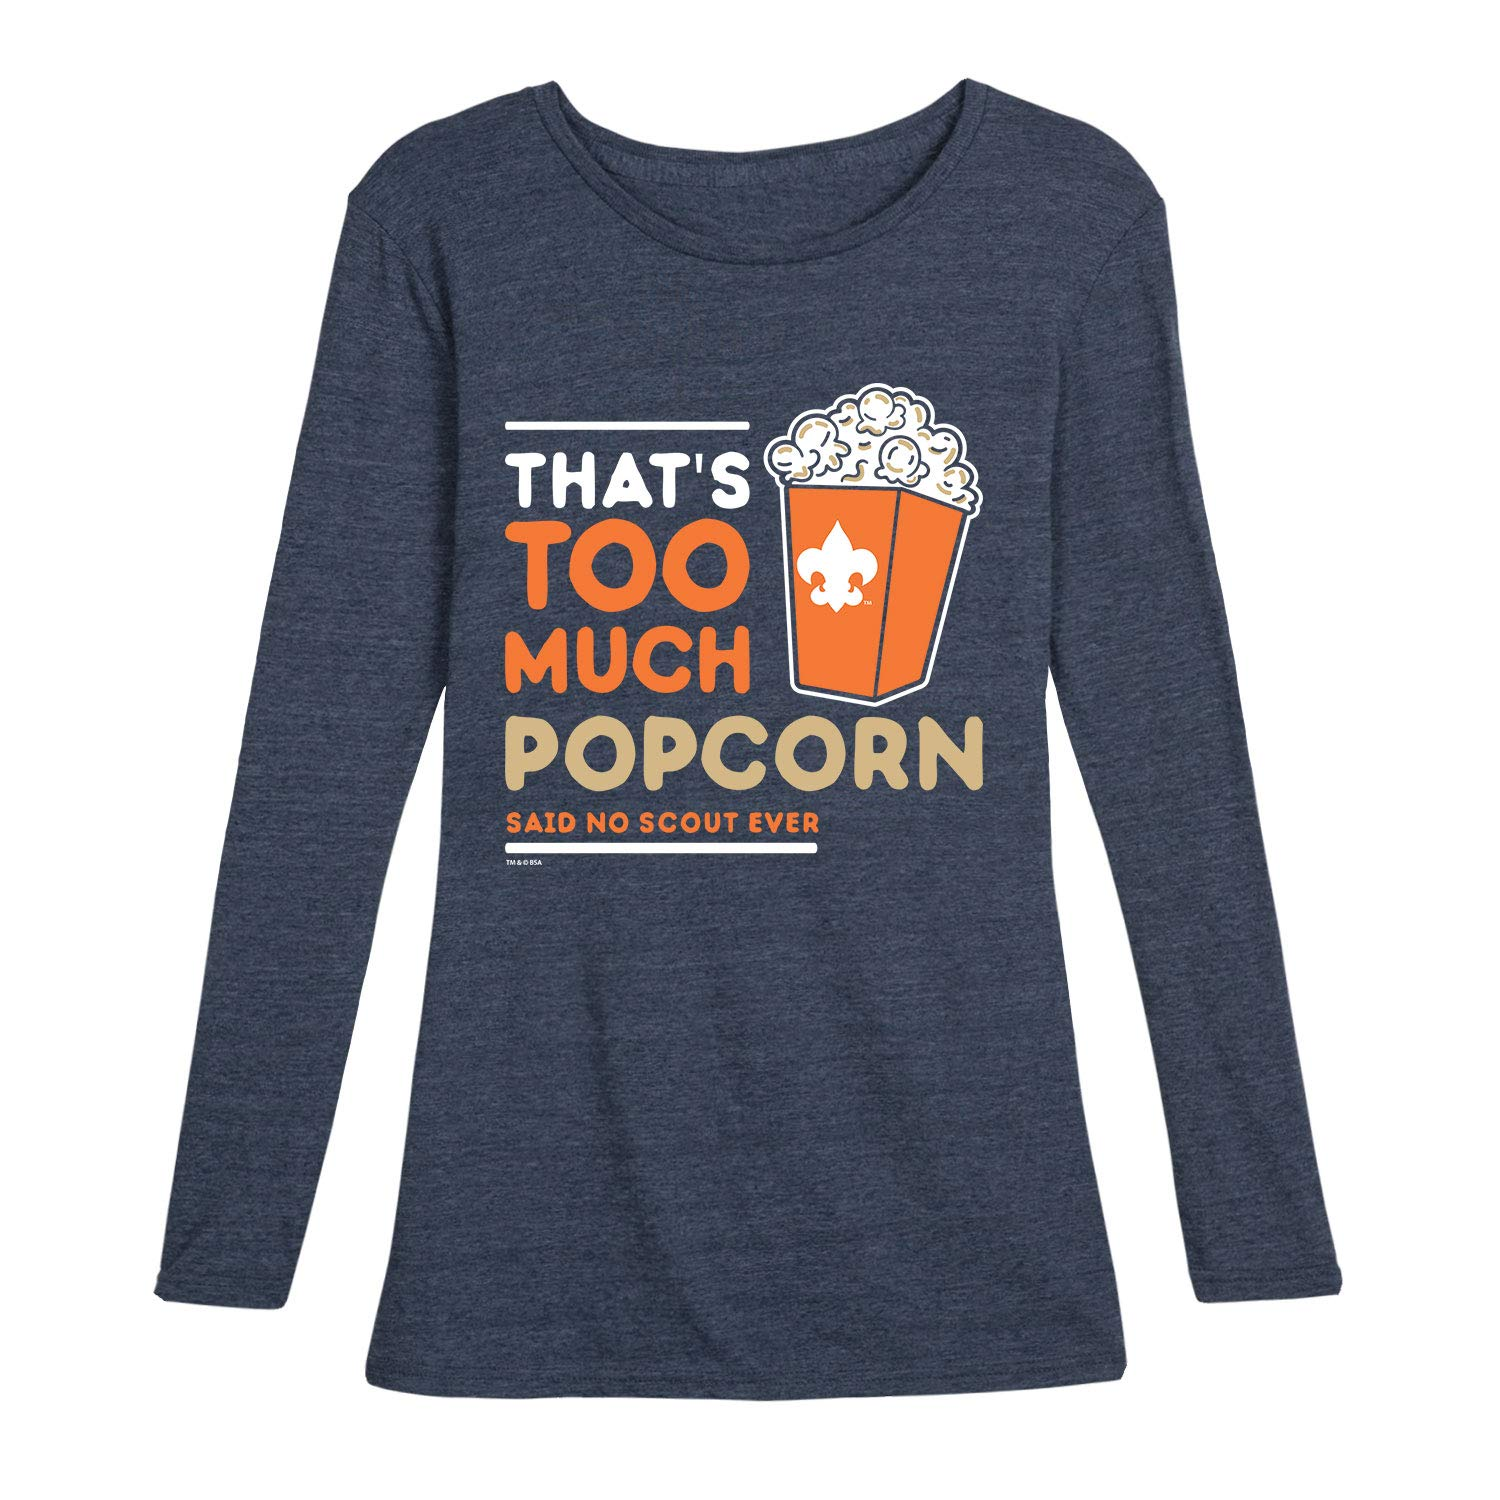 Boy Scouts of America Thats Too Much Popcorn - Ladies Long Sleeve Tee Heather Blue by Instant Message